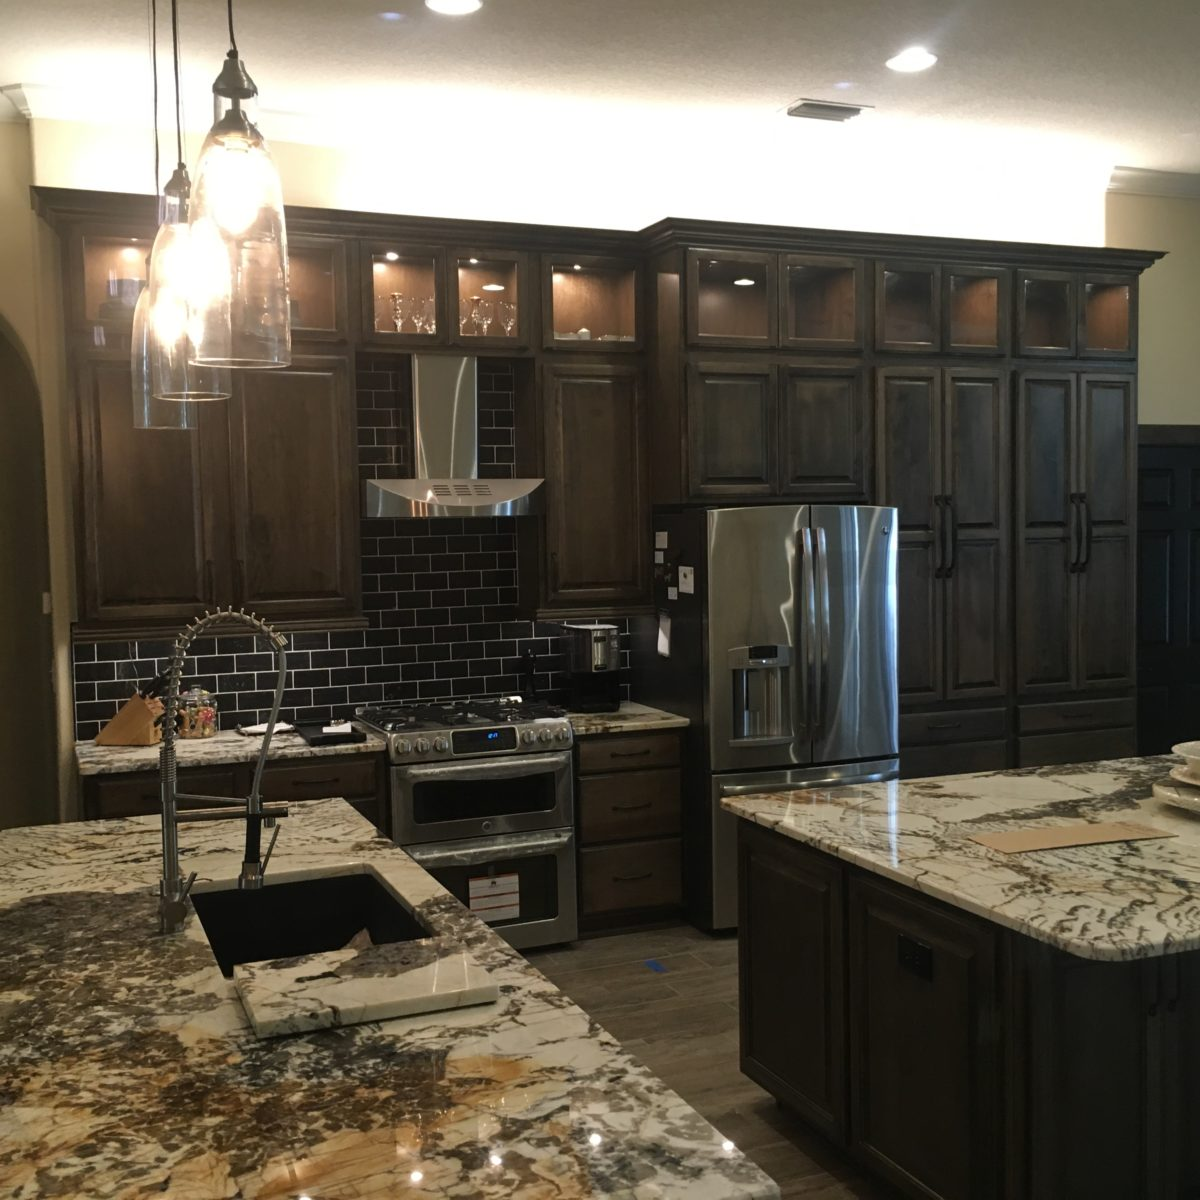 Bellmont Cabinets Alba Kitchen Design Center Kitchen Cabinets Nj: kitchen and bath design center lake hopatcong nj